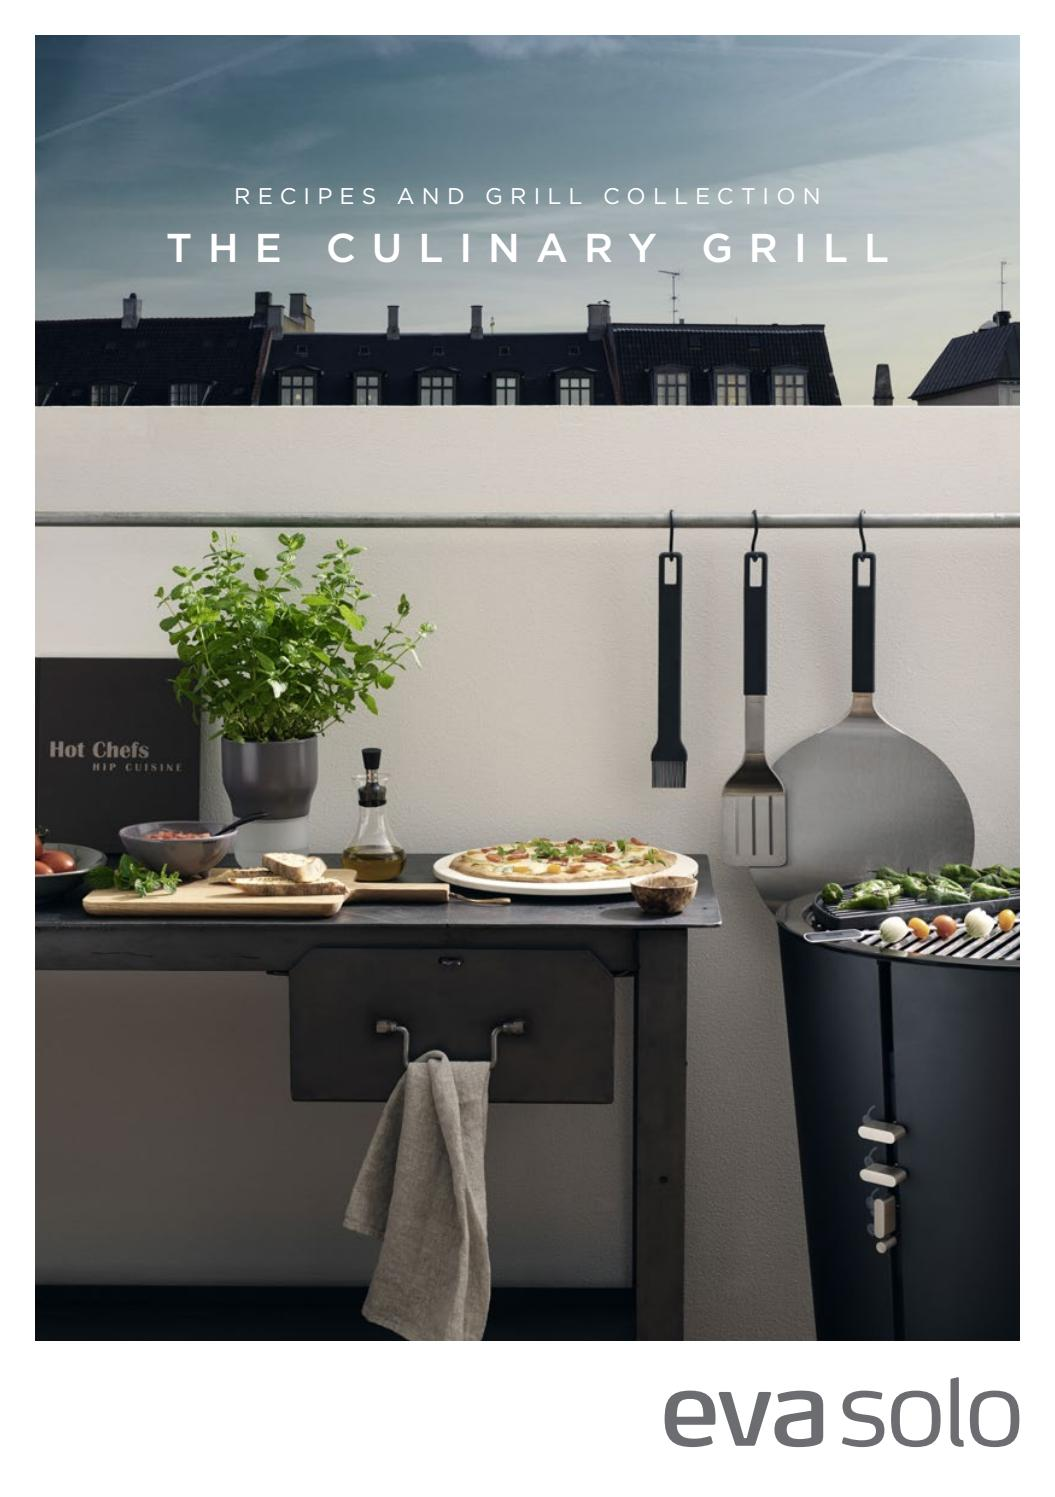 Eva Solo Gasgrill Eva Solo Recipes And Grill Collection Uk By Eva Solo Issuu